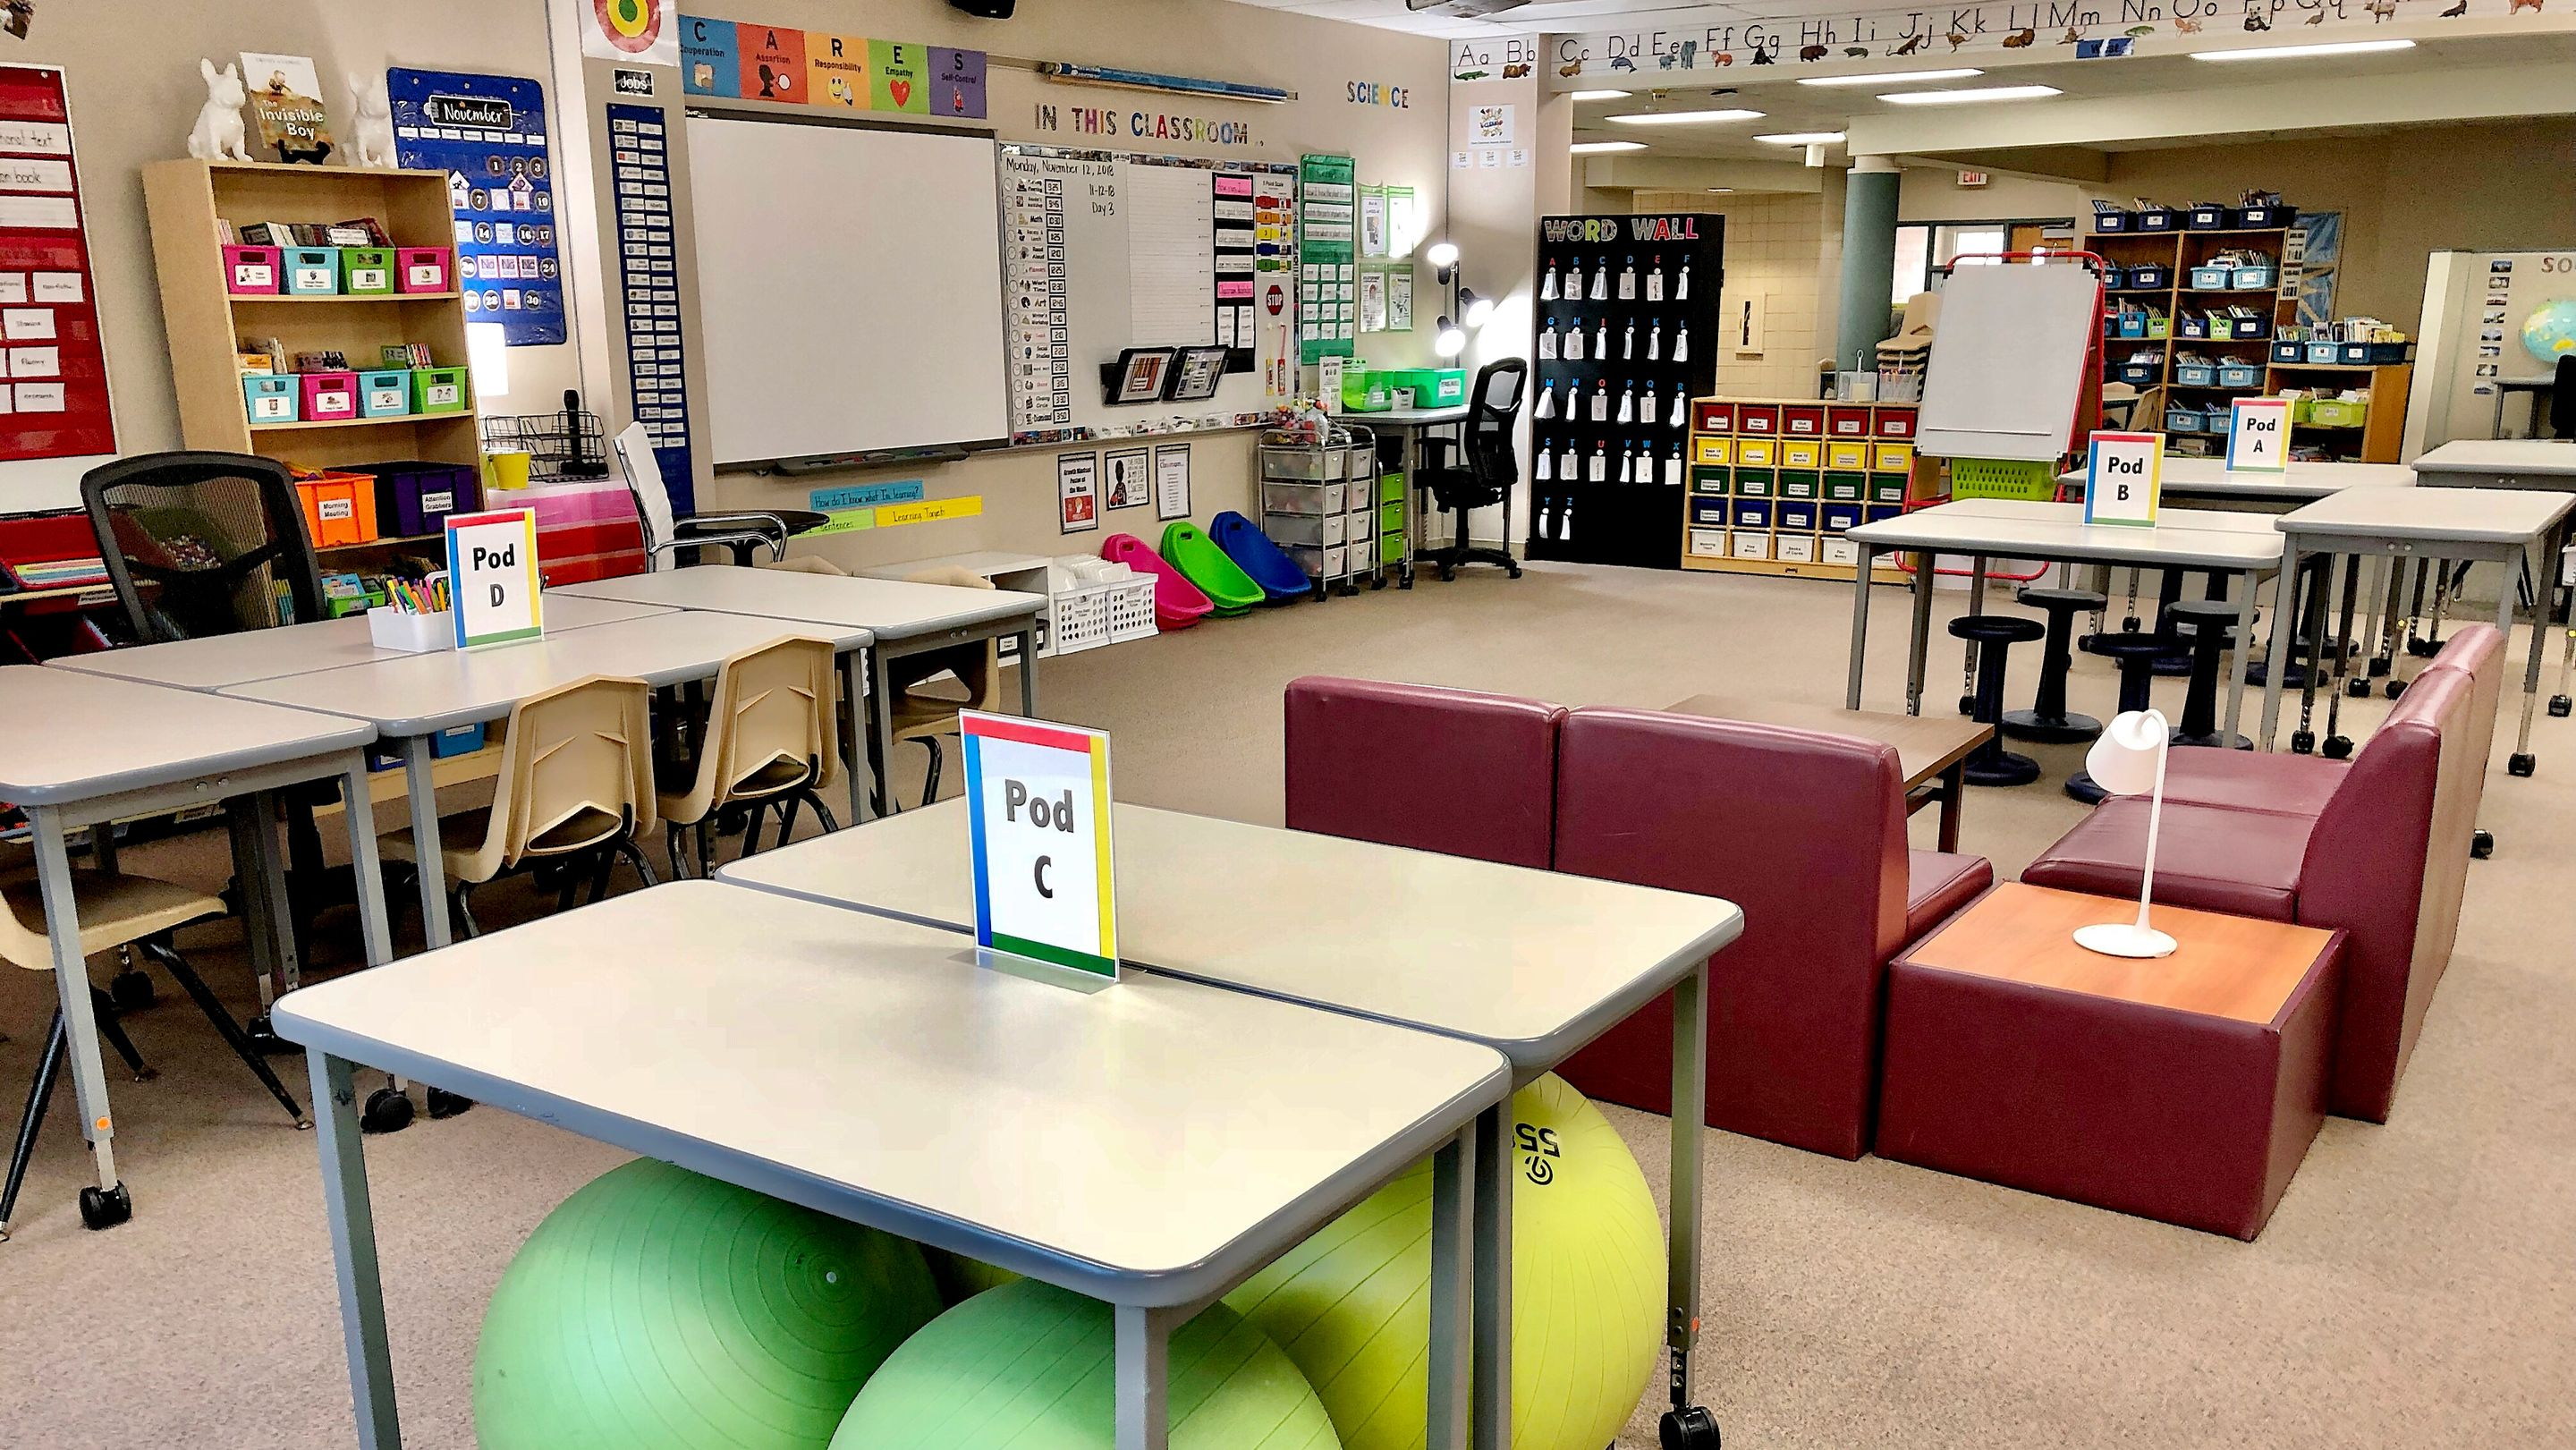 Designing Flexible Seating With Elementary School Students